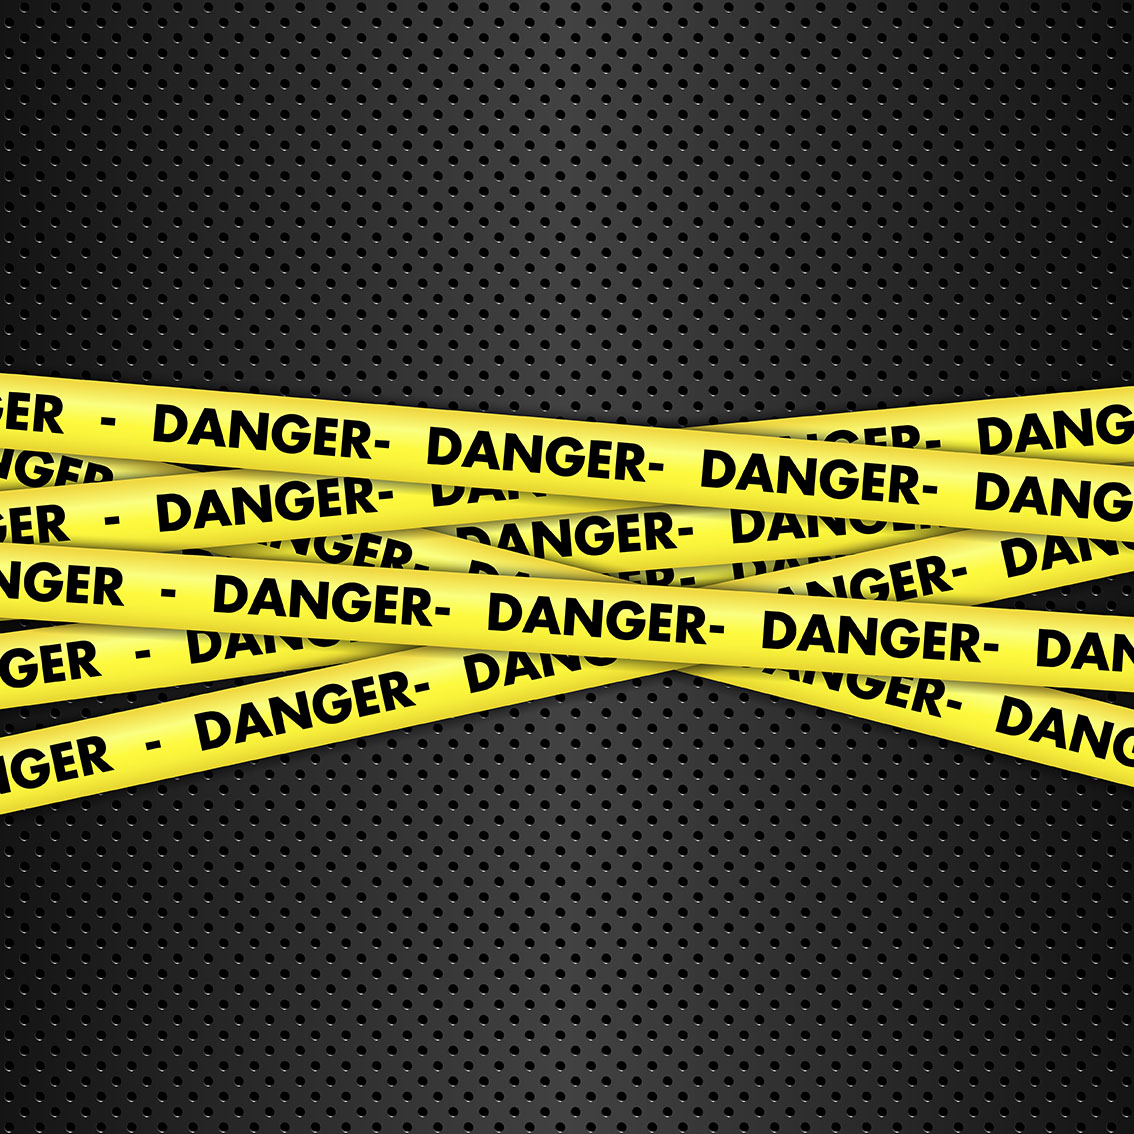 Danger tape on metallic background